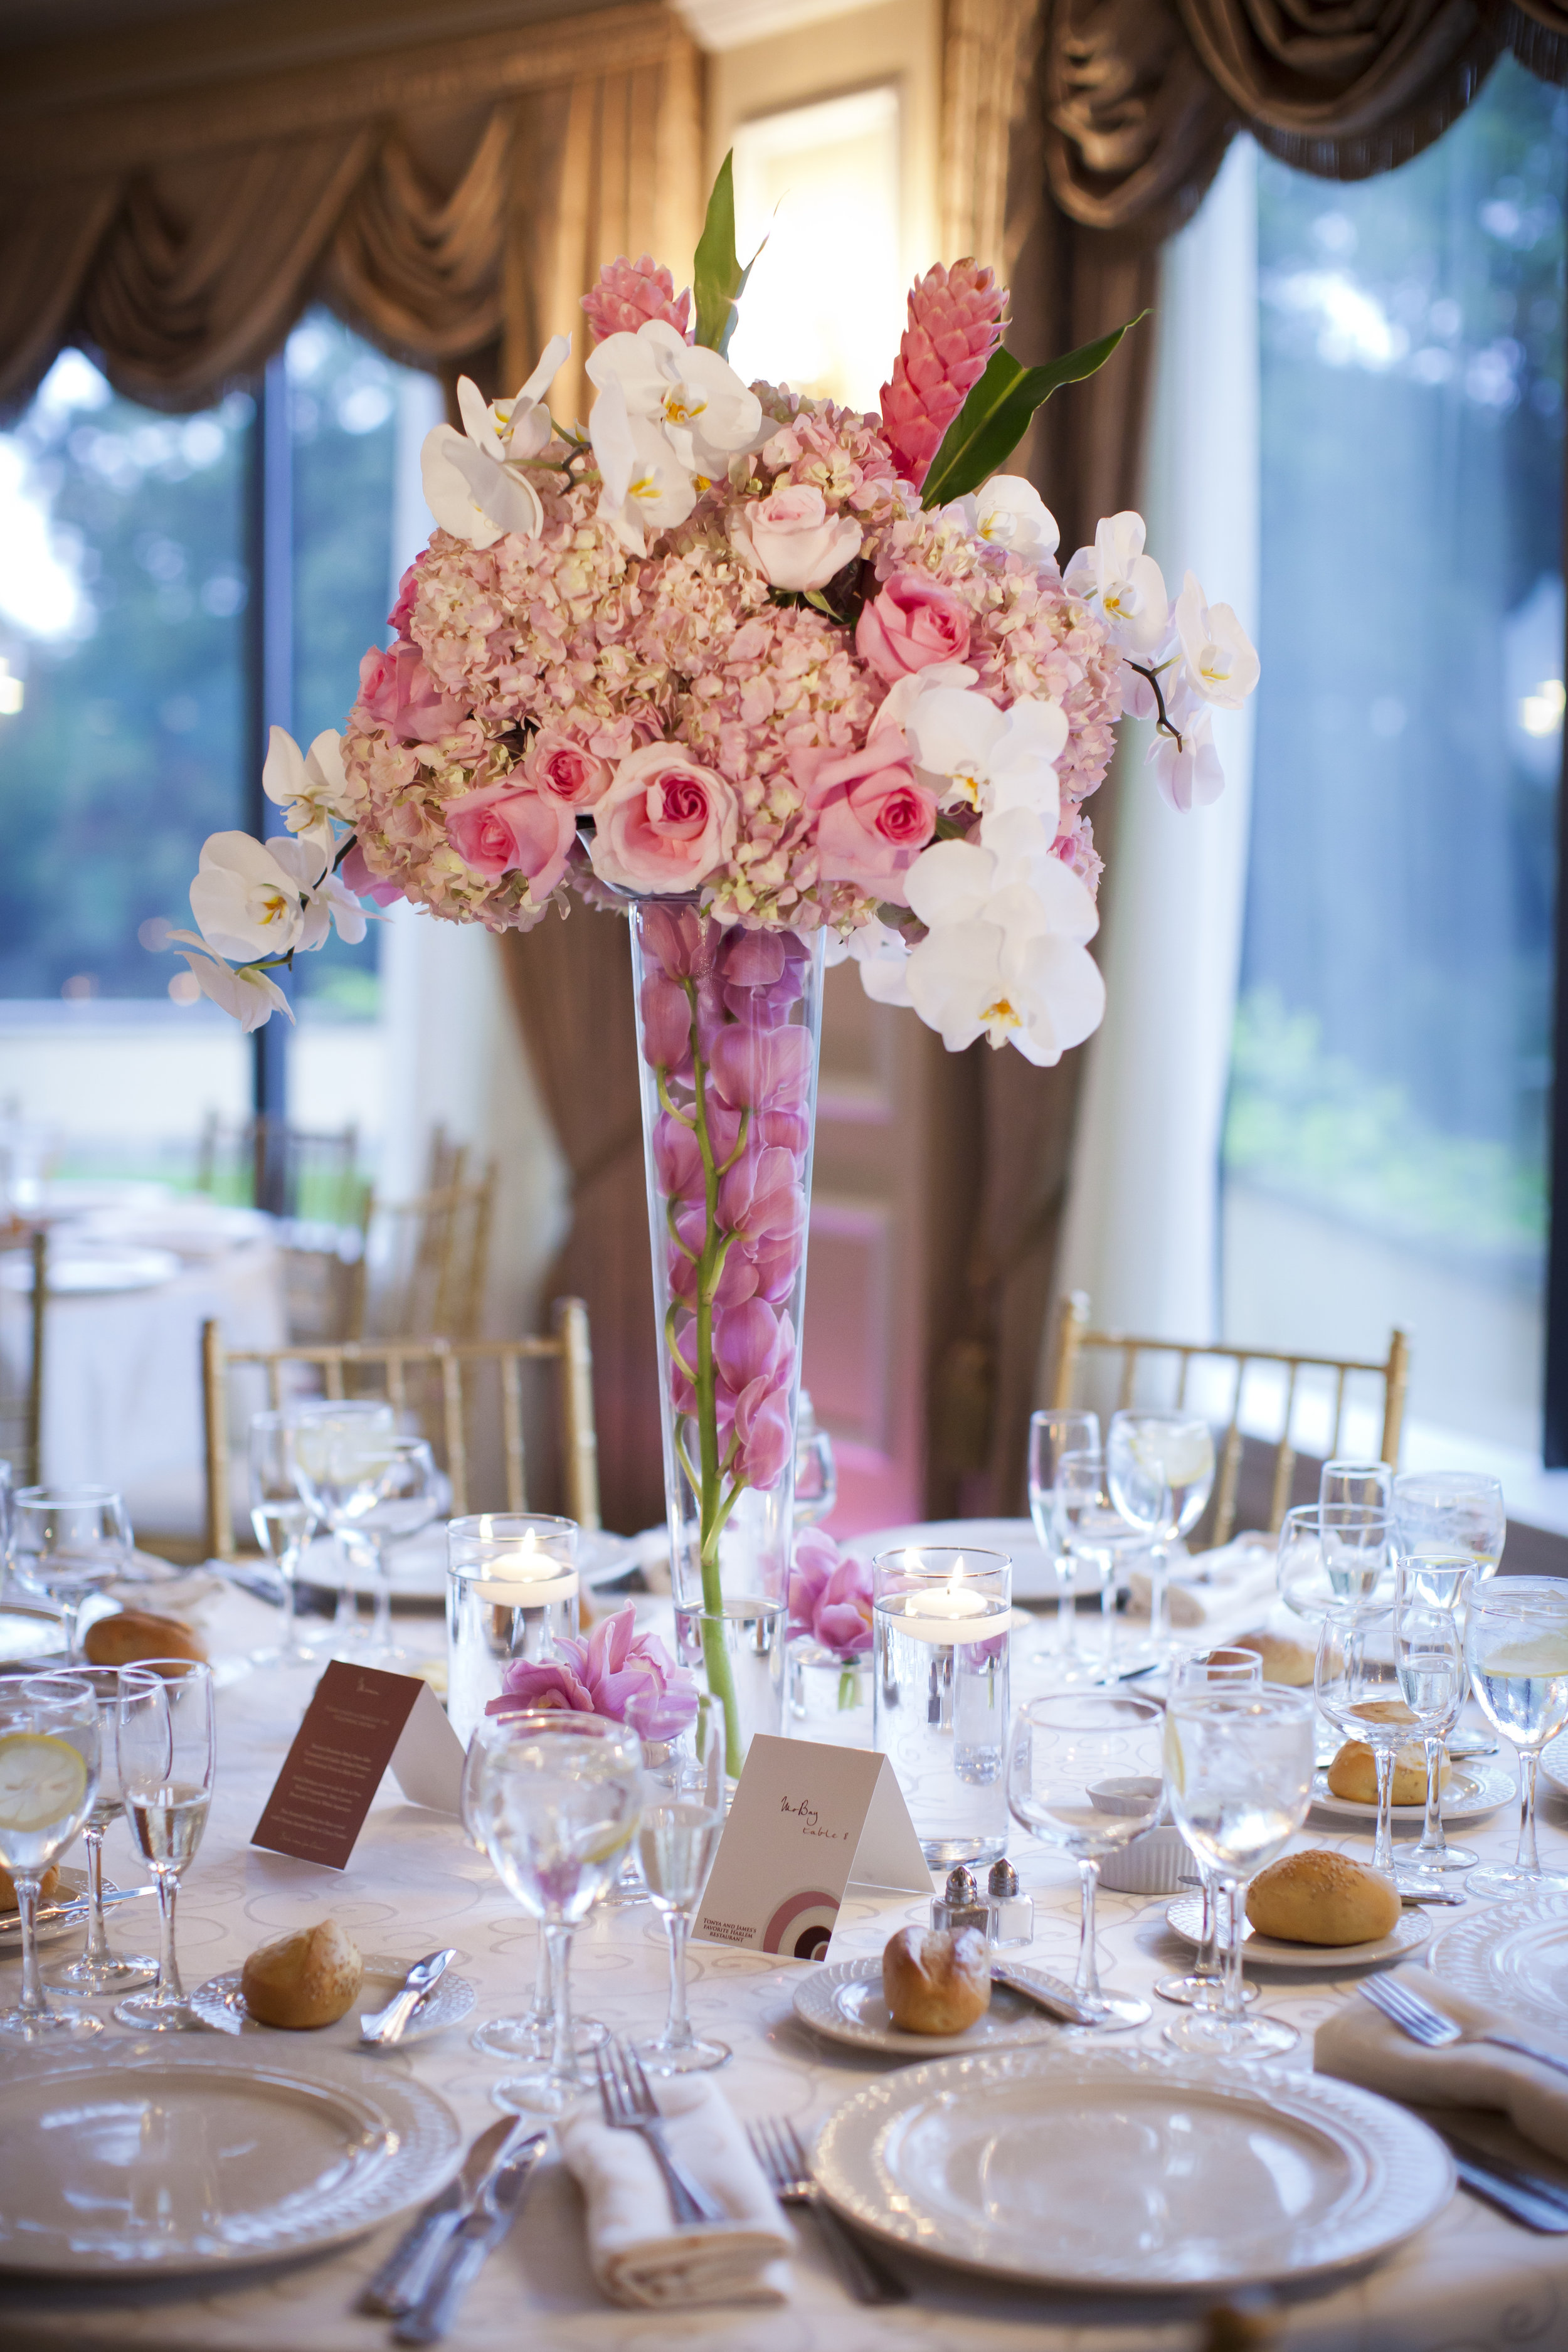 Pink and White Wedding Centerpieces.jpg